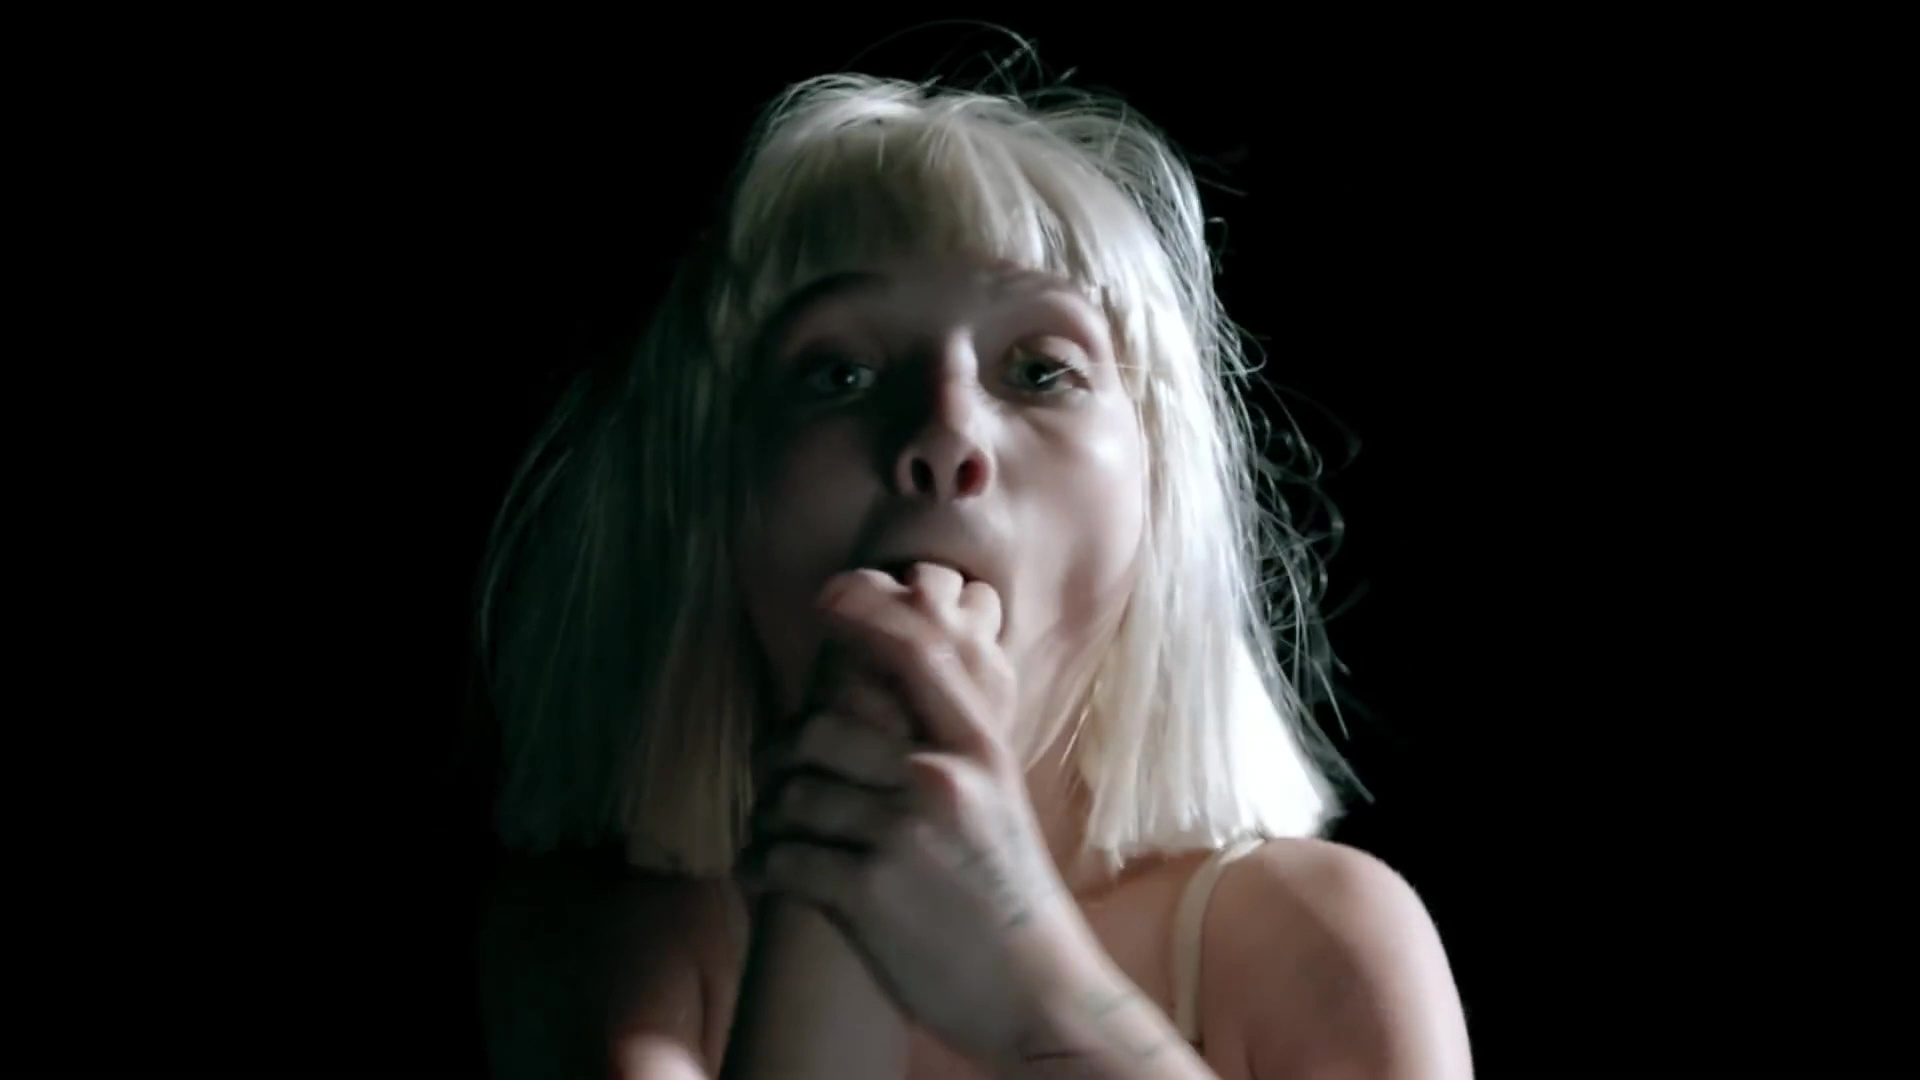 Big girls cry music video sia photo 39005143 fanpop for Sia download